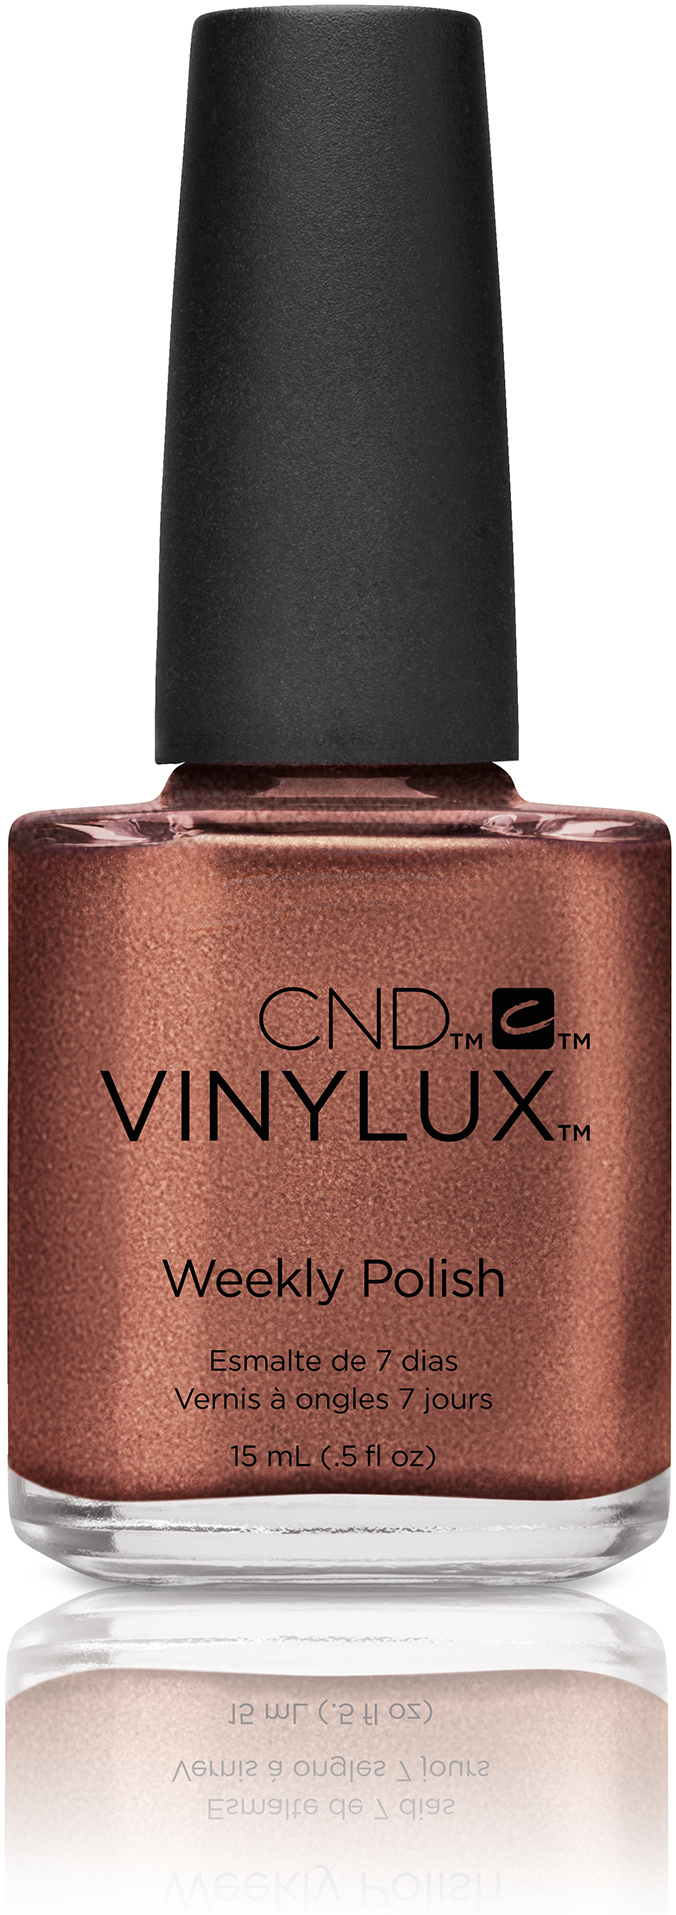 CND Vinylux Craft Culture Collection Leather Satchel